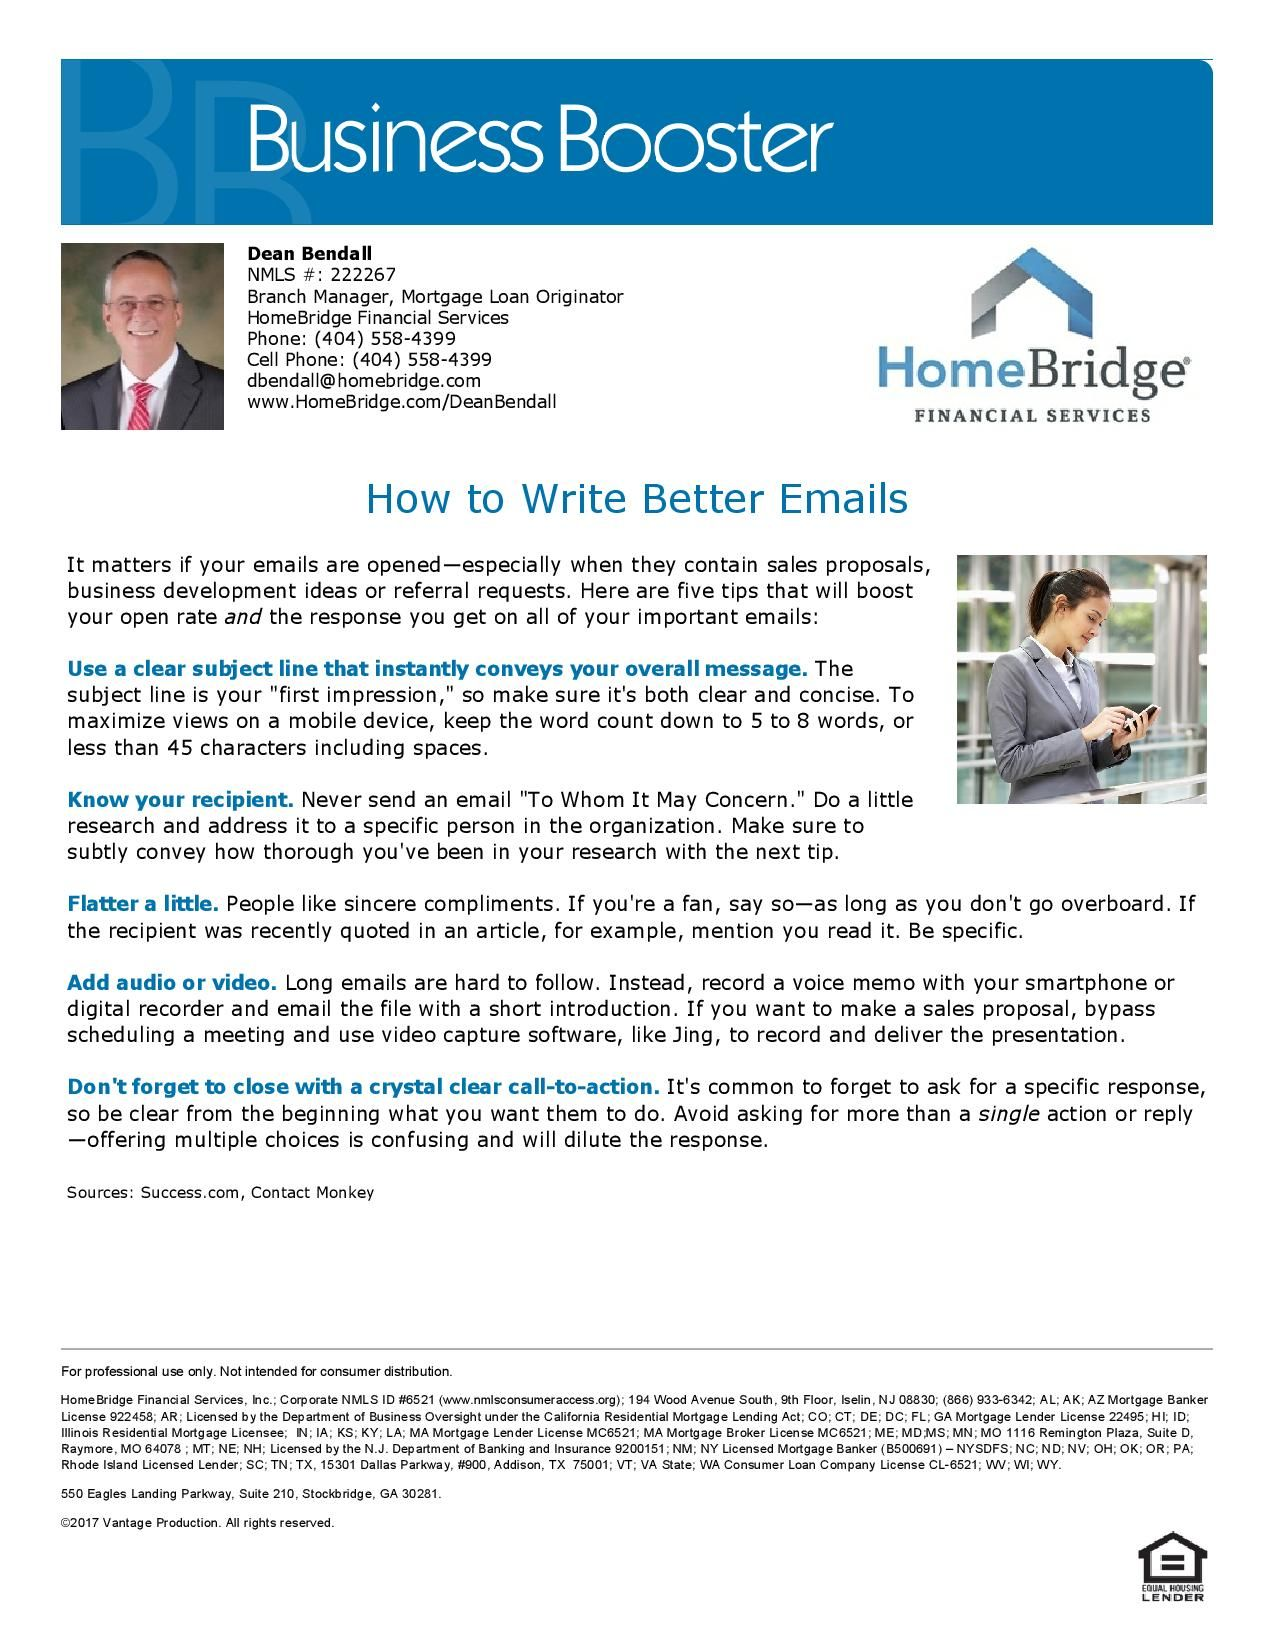 How To Write Better Emails Dean Bendall Mortgage Loan Originator Nmls 222267 Mortgage Loan Originator Mortgage Loans Mortgage Refinance Calculator